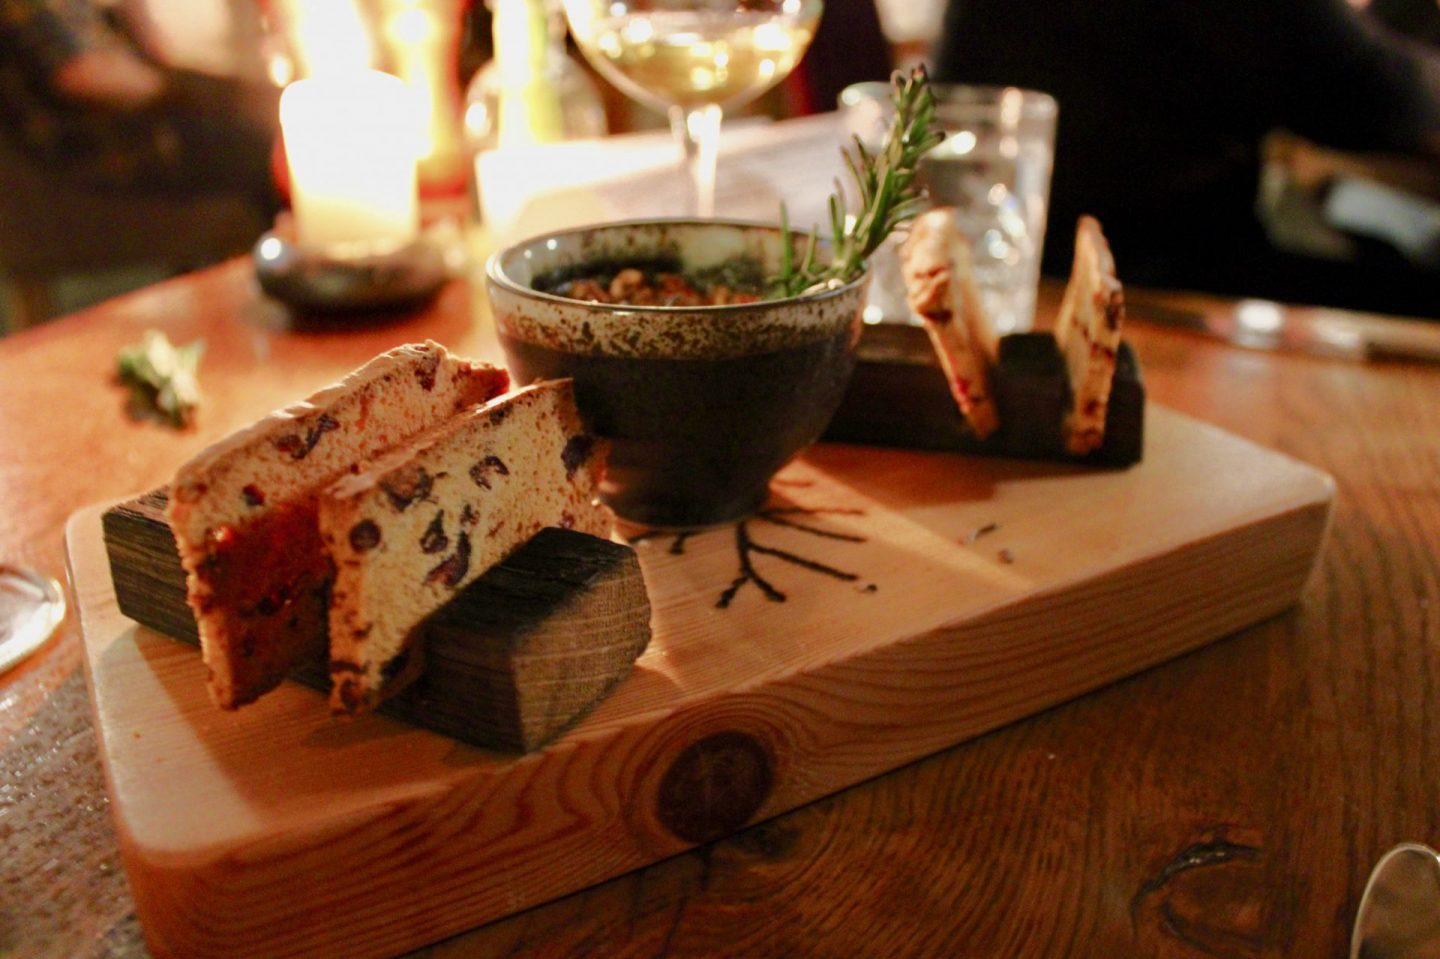 A bowl of baked cheese with a sprig of rosemary on top, served on a wooden board at the Star Inn at Harome